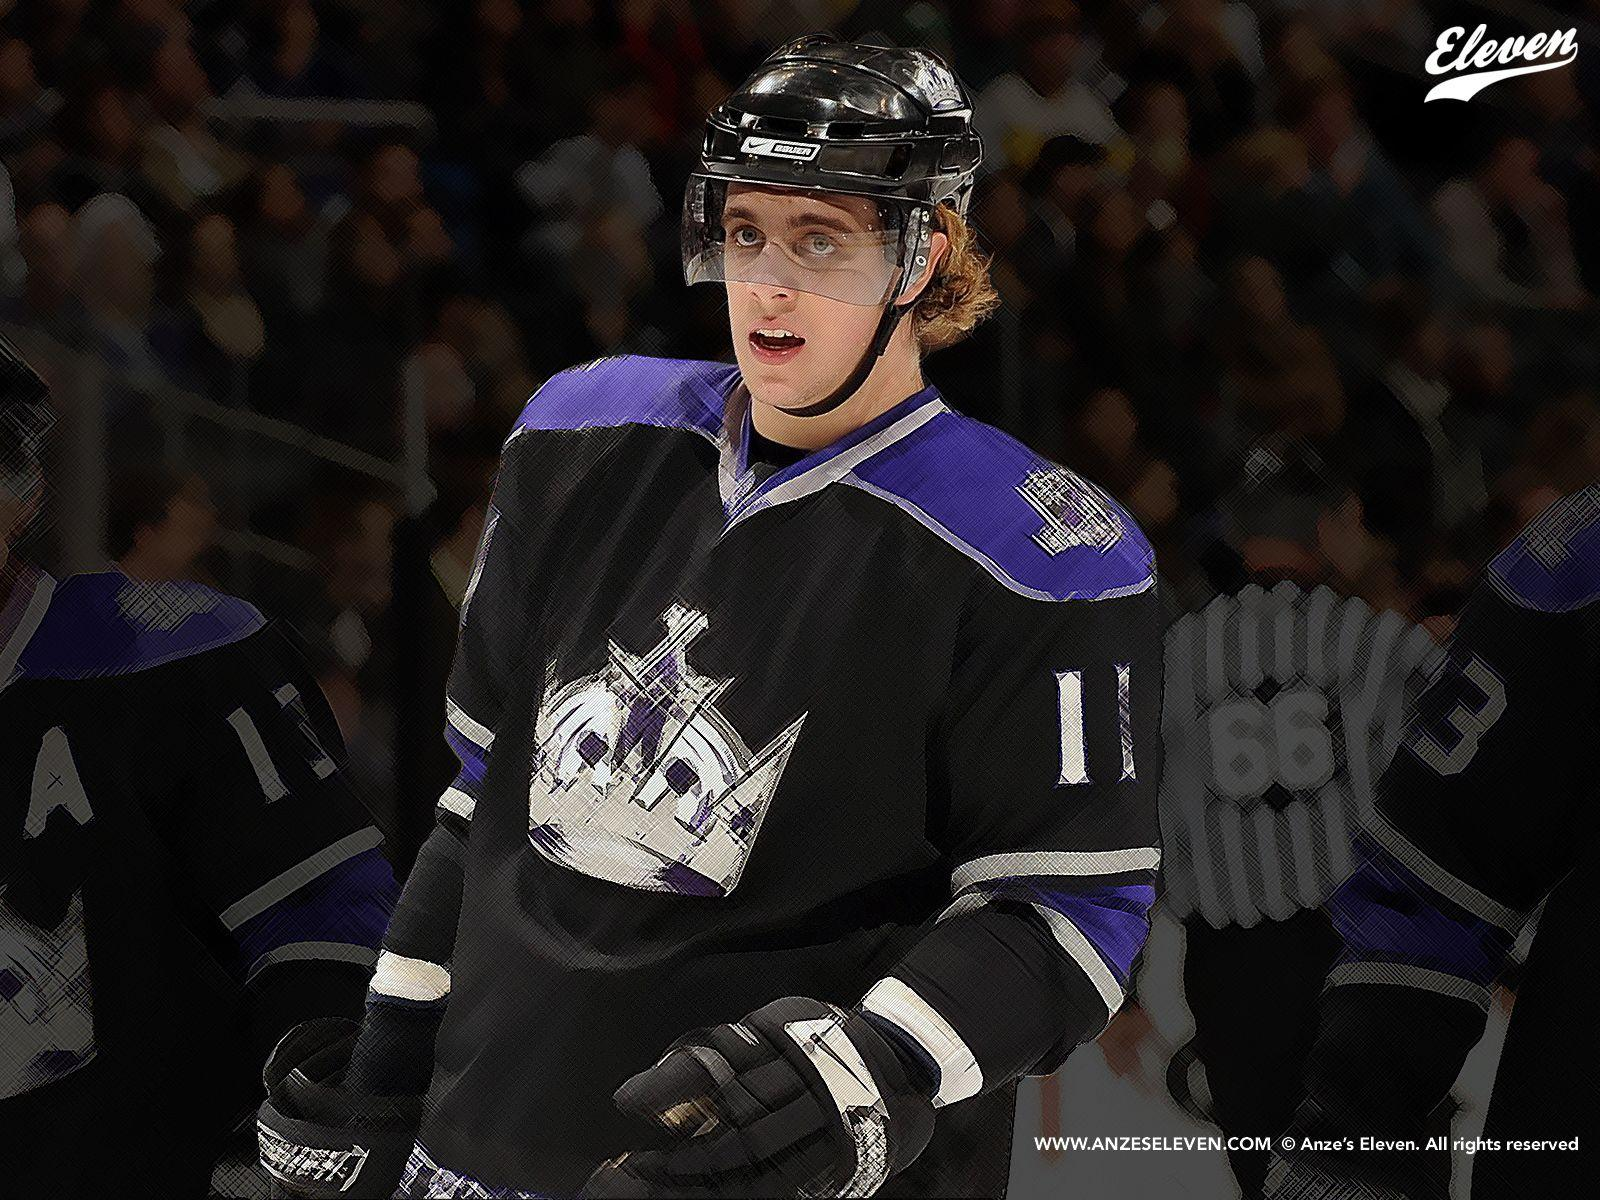 Player Los Angeles Anze Kopitar wallpapers and image